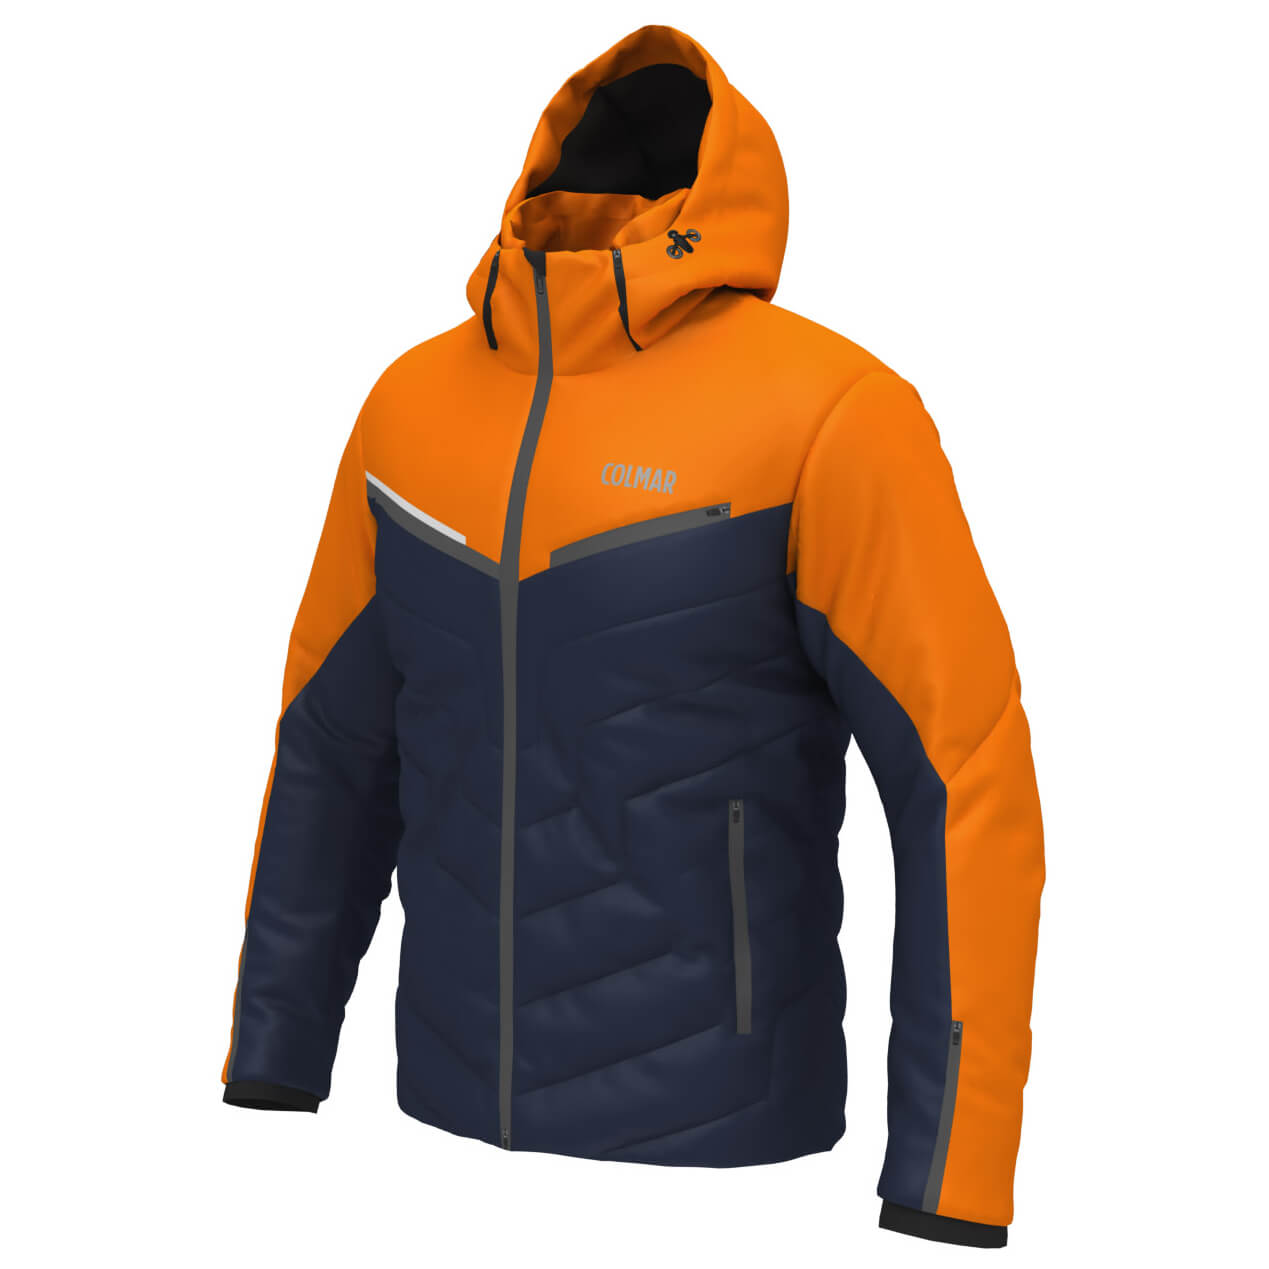 Colmar Active Sapporo Kandahar Ski Jacket Men's | Buy